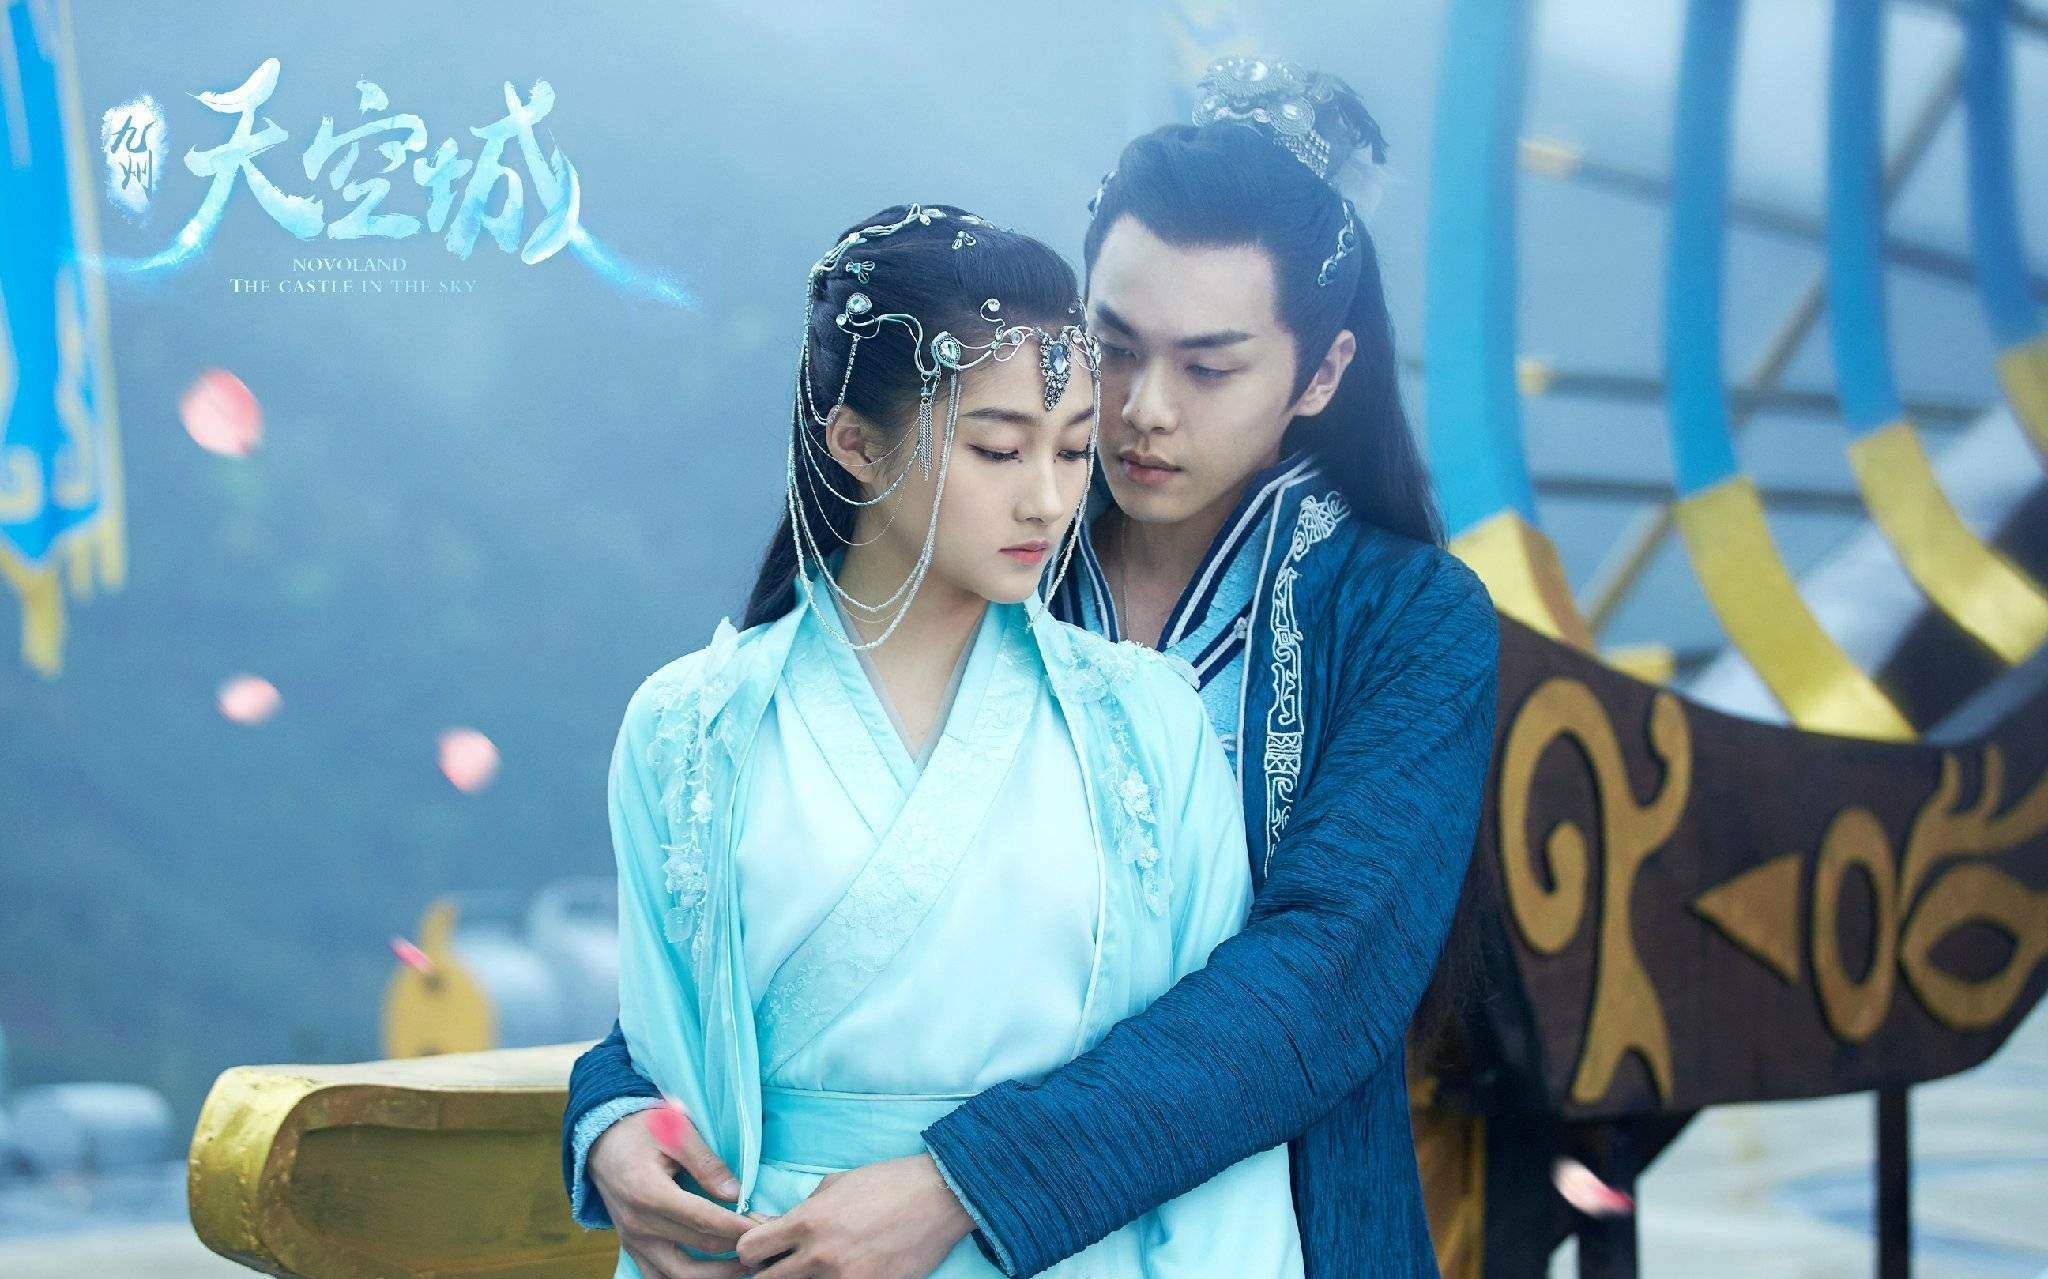 Novoland: The Castle in the Sky - C-Drama - Asiachan KPOP Image Board